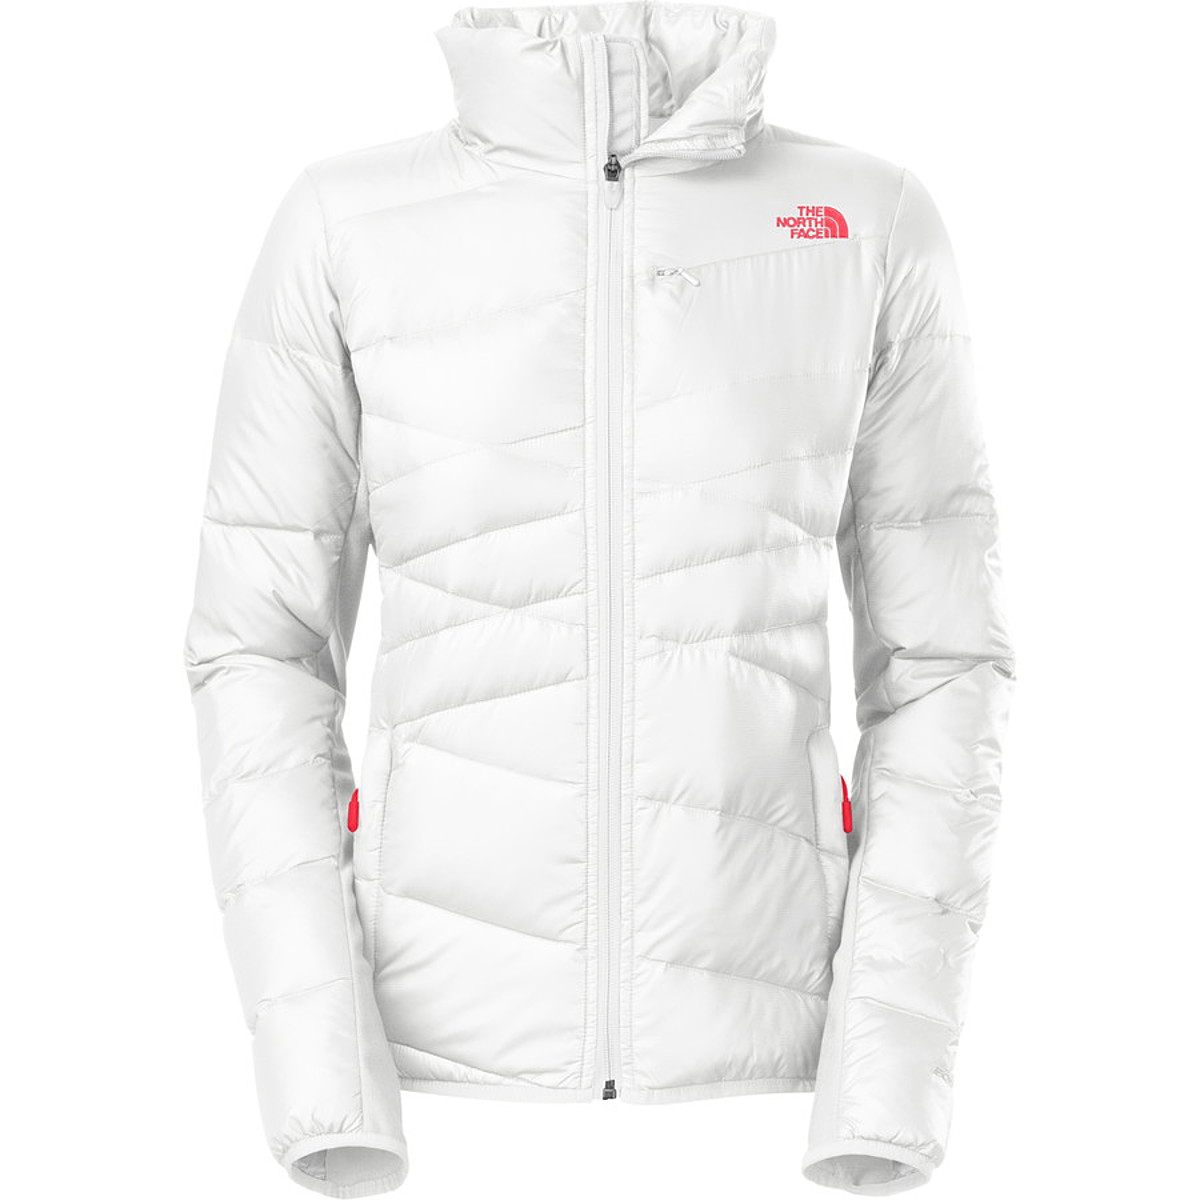 The North Face Hyline Hybrid Down Jacket